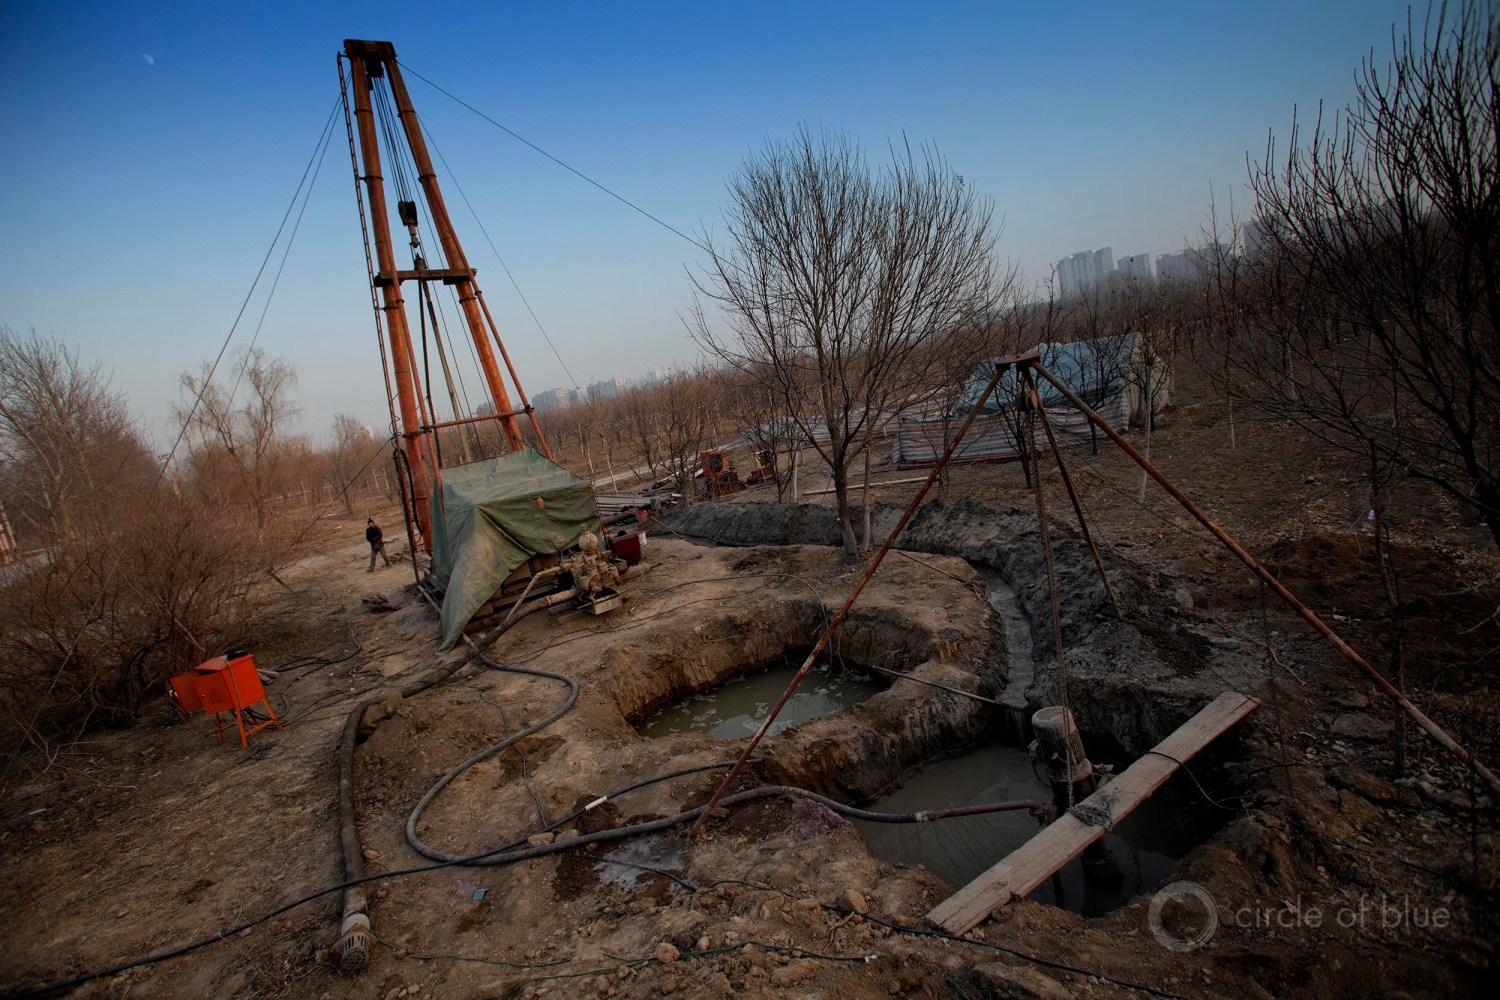 A community in Hebei Province, just outside of Beijing, drills for water to replace a dry well. The proliferation of such wells in the Beijing region is causing the land to sink, a process called subsidence. Photo © Aaron Jaffe / Circle of Blue